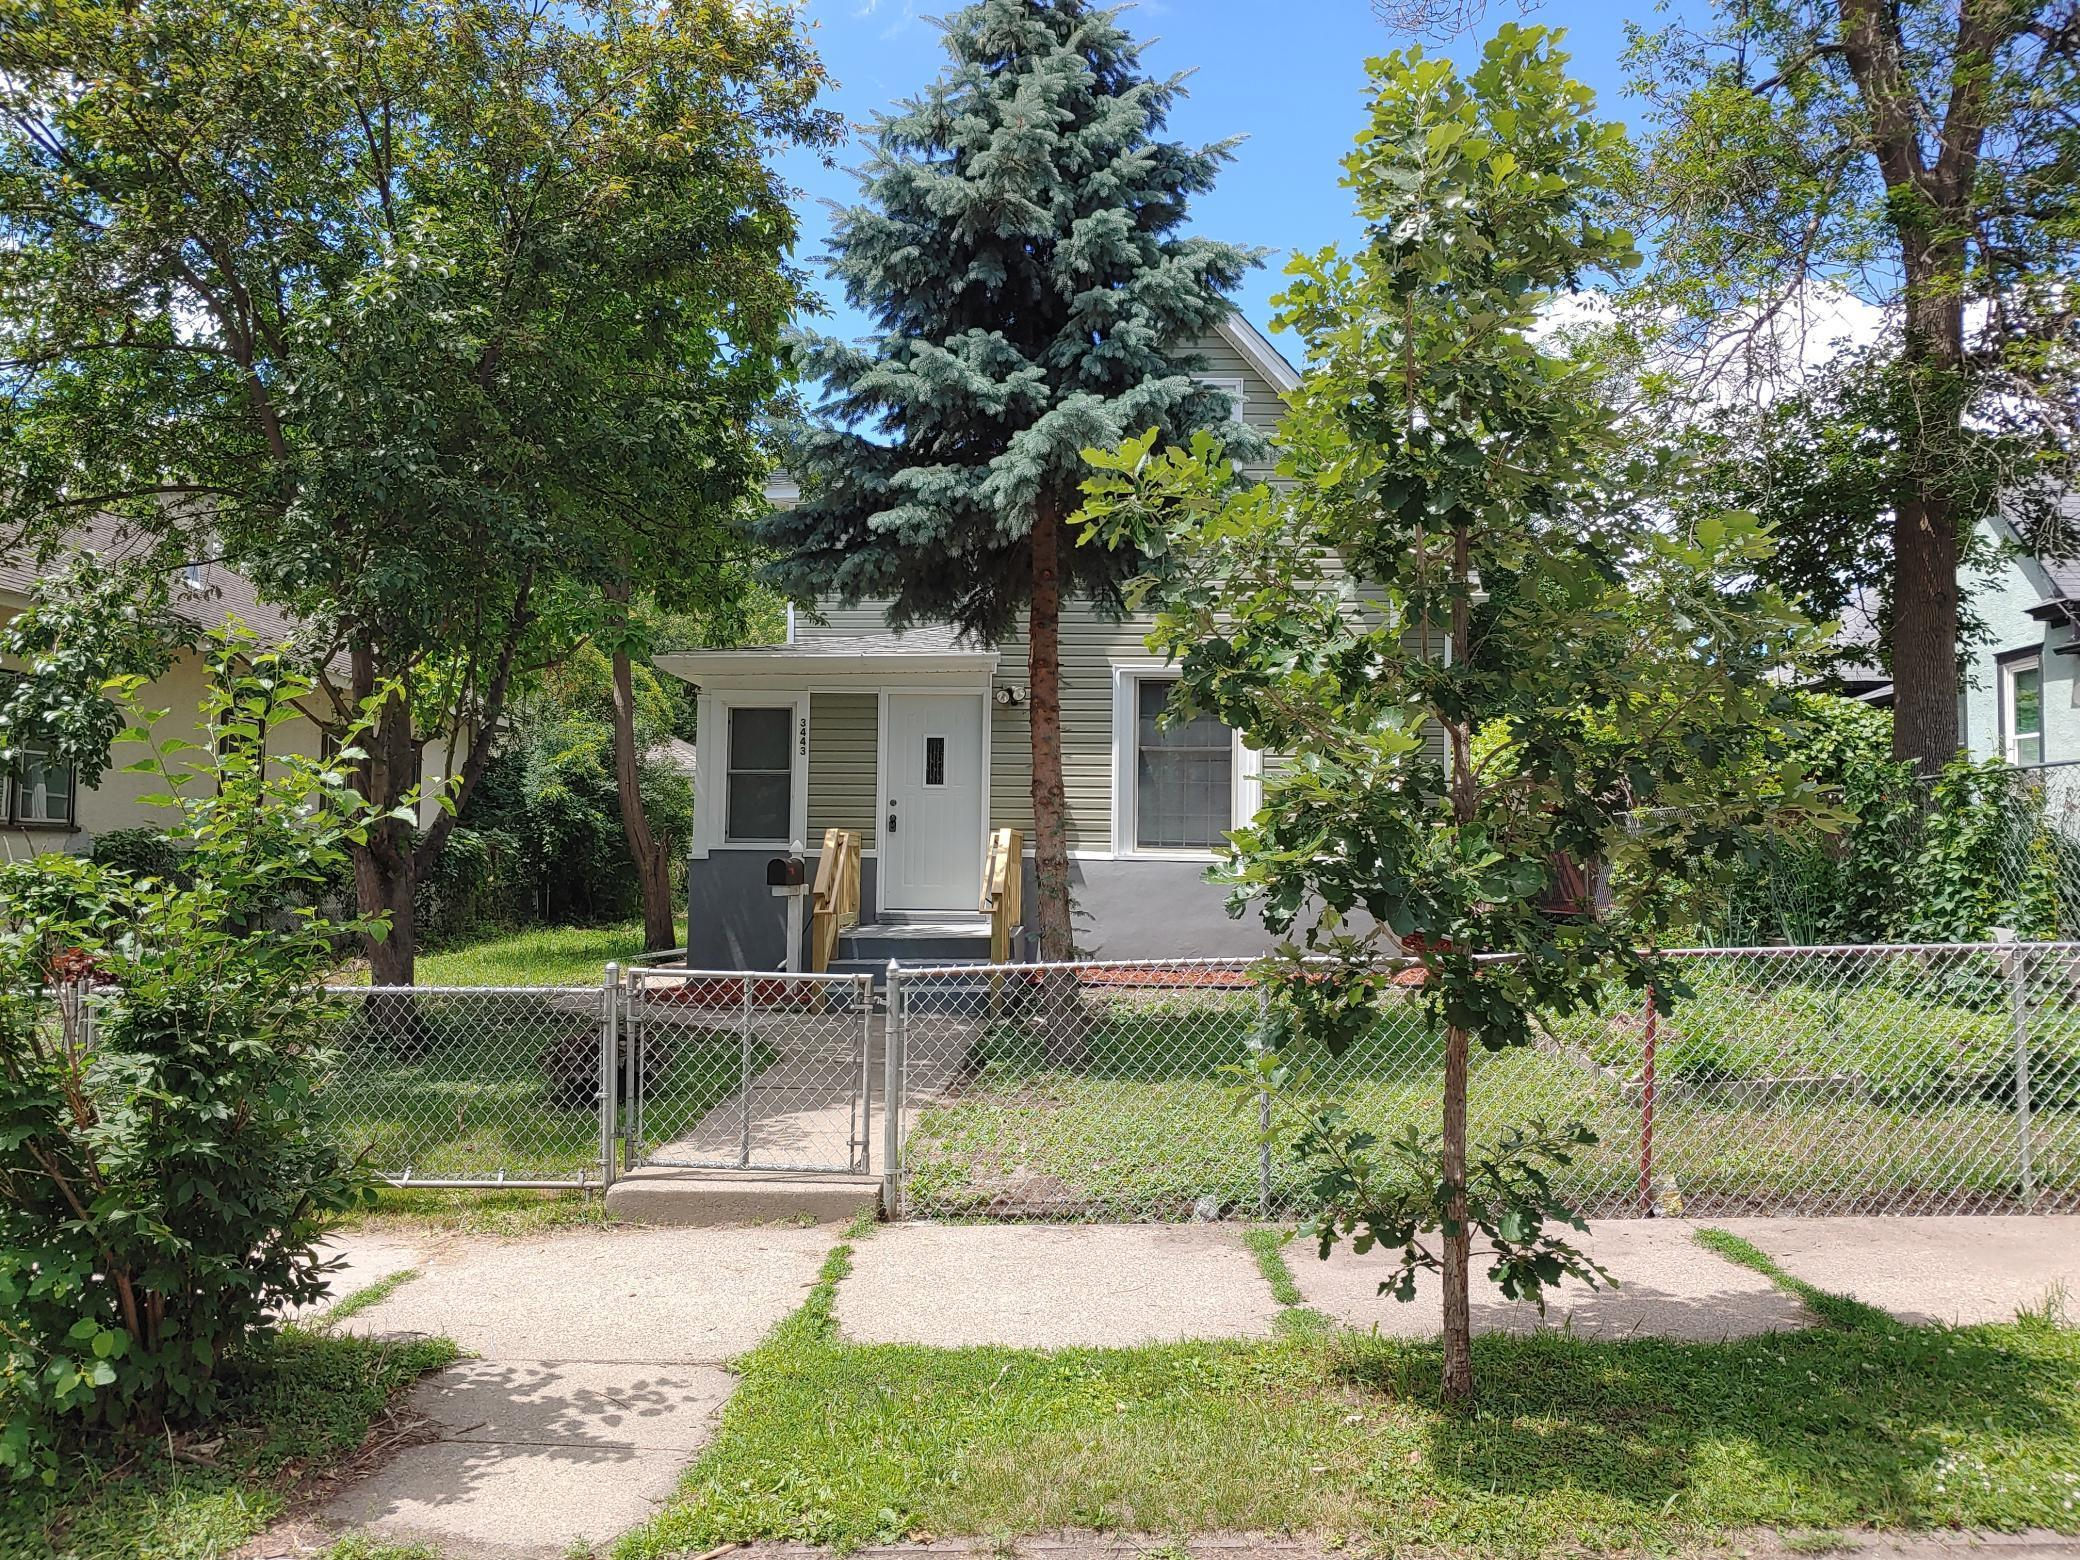 3443 Bryant N Property Photo - Minneapolis, MN real estate listing